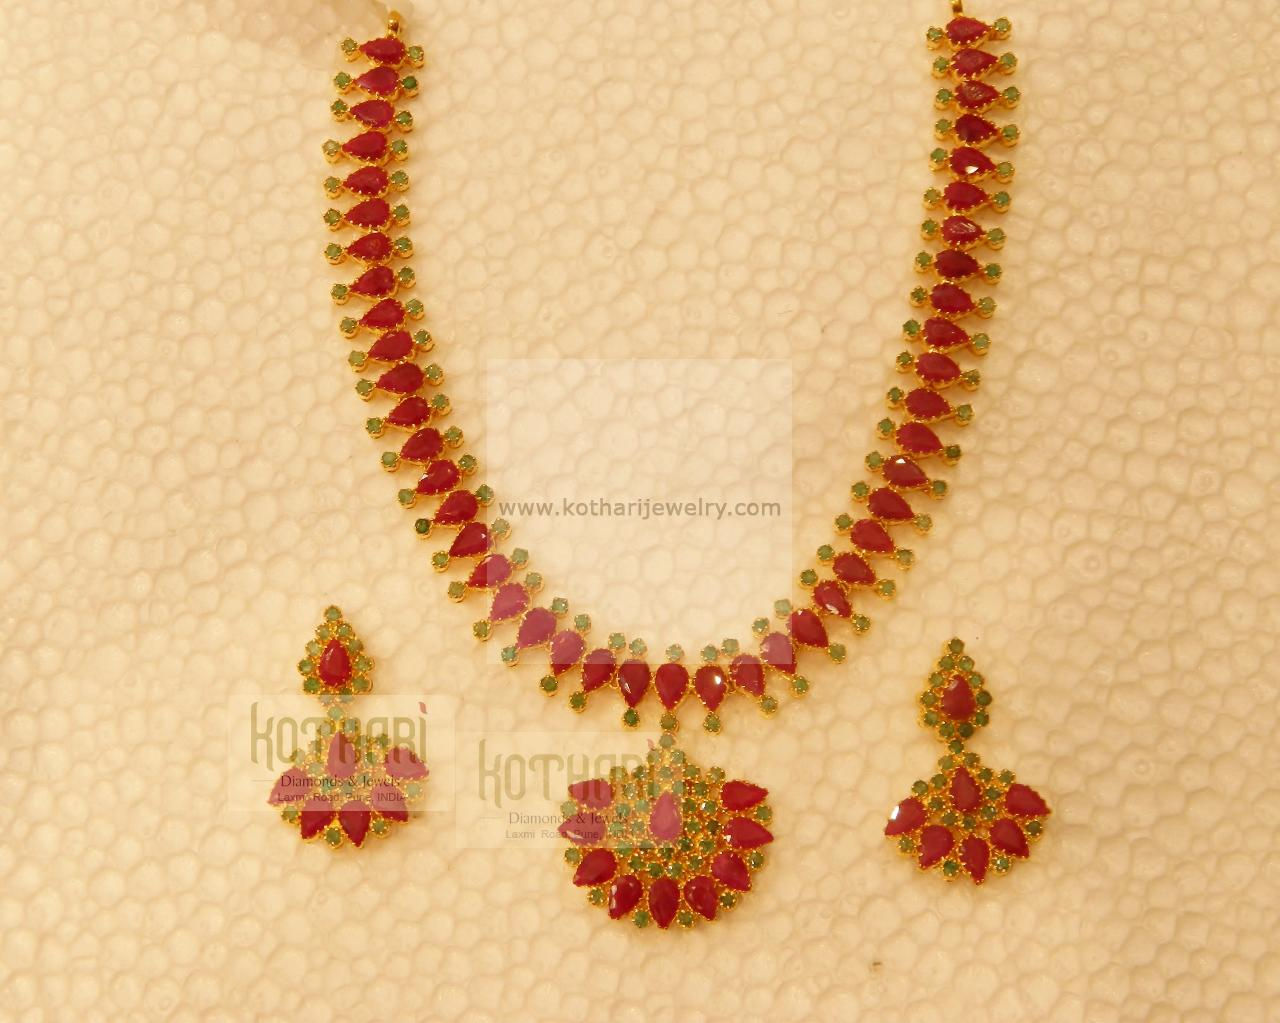 Necklaces / Harams - Gold Jewellery Necklaces / Harams (NK44254425 ...